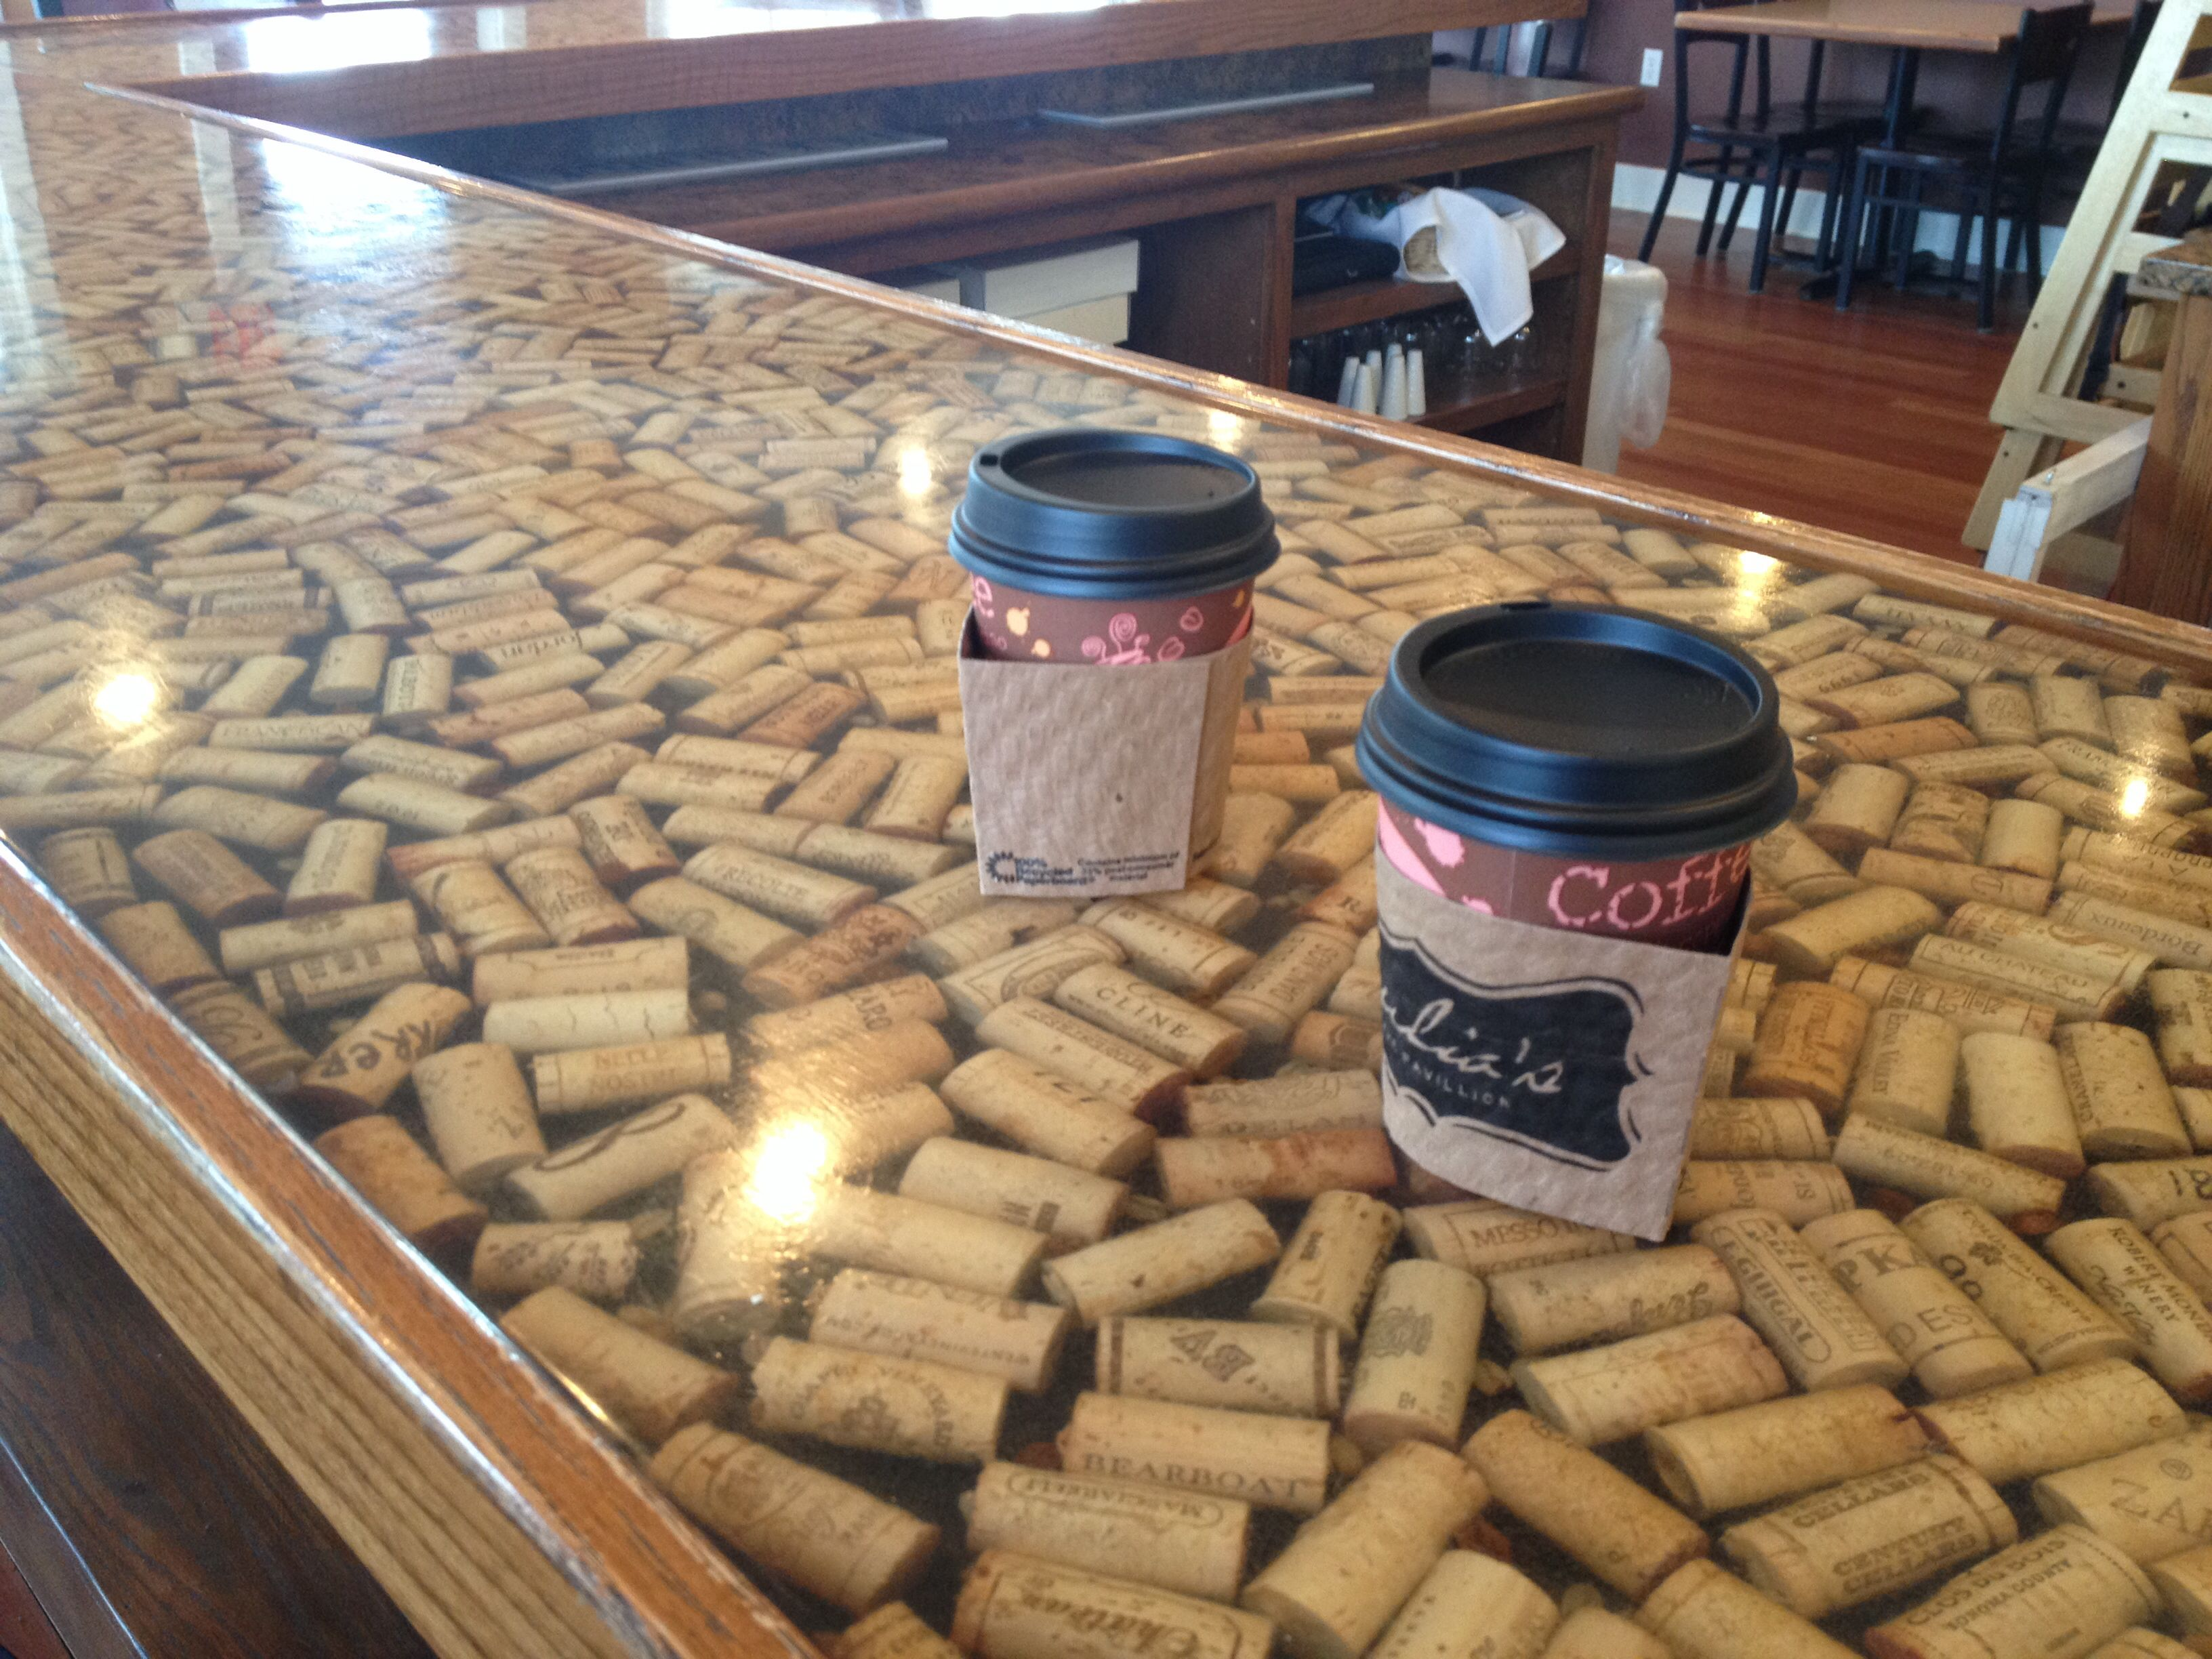 Wine cork countertop